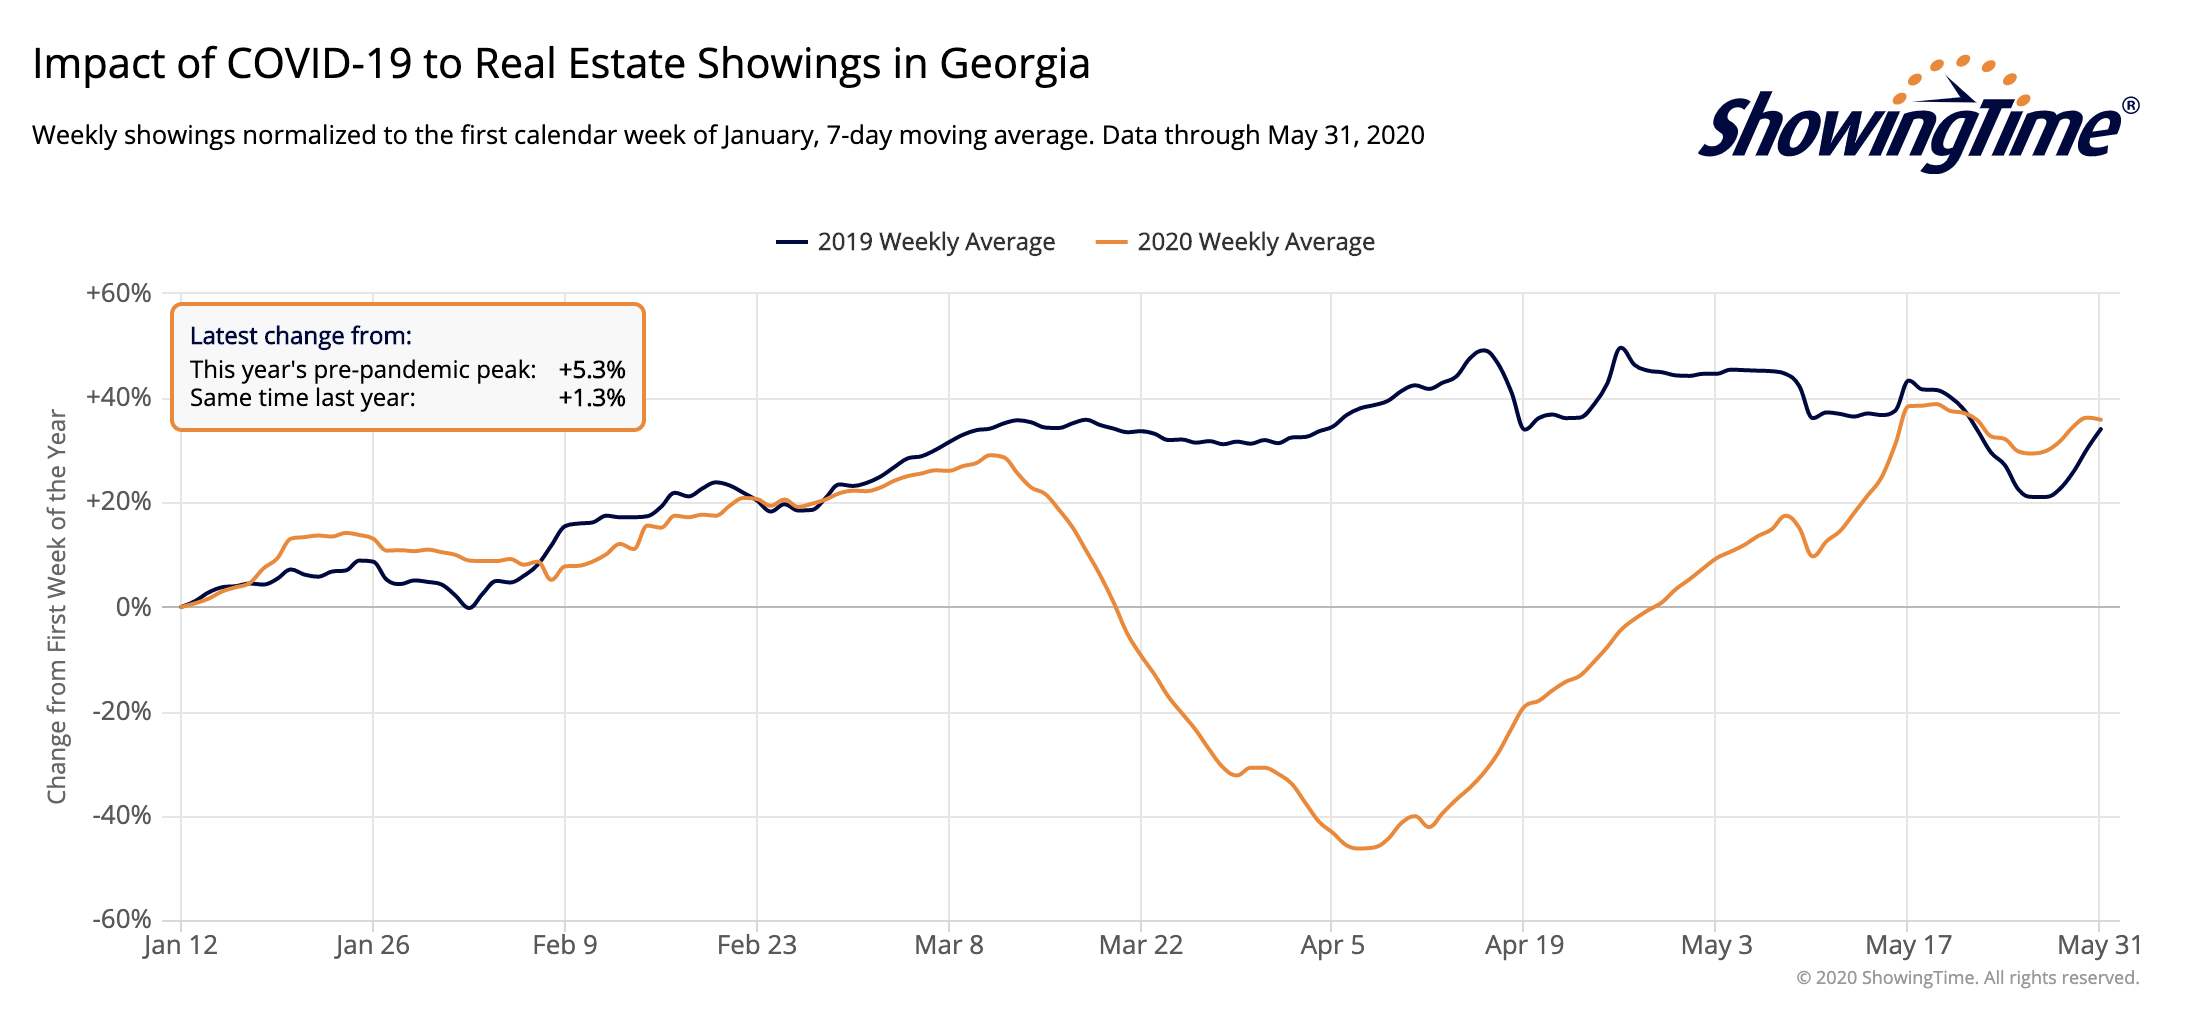 Georgia Showings